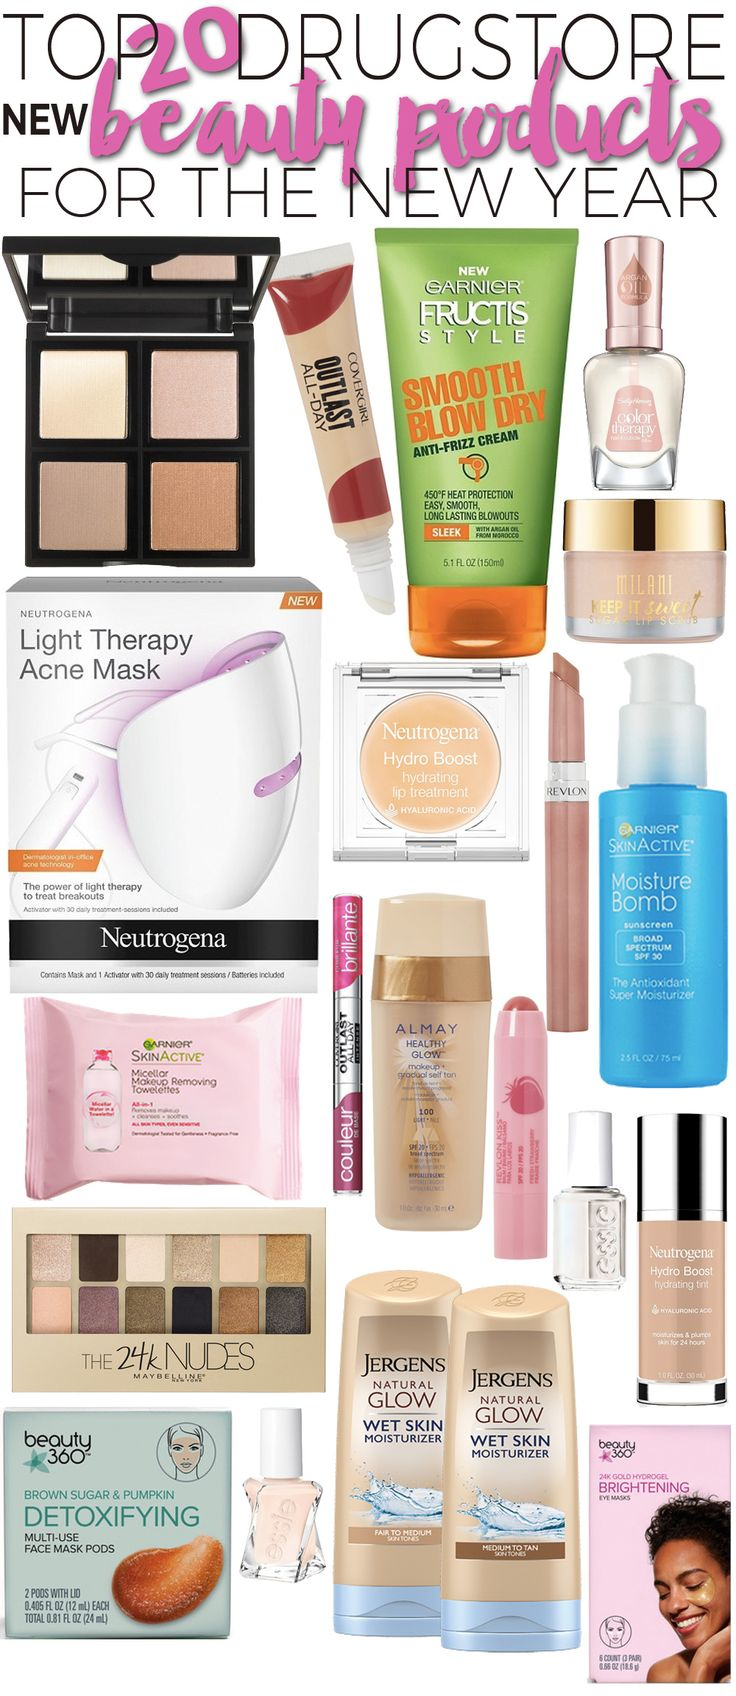 Top 20 New Drugstore Beauty Produts to Try this Year